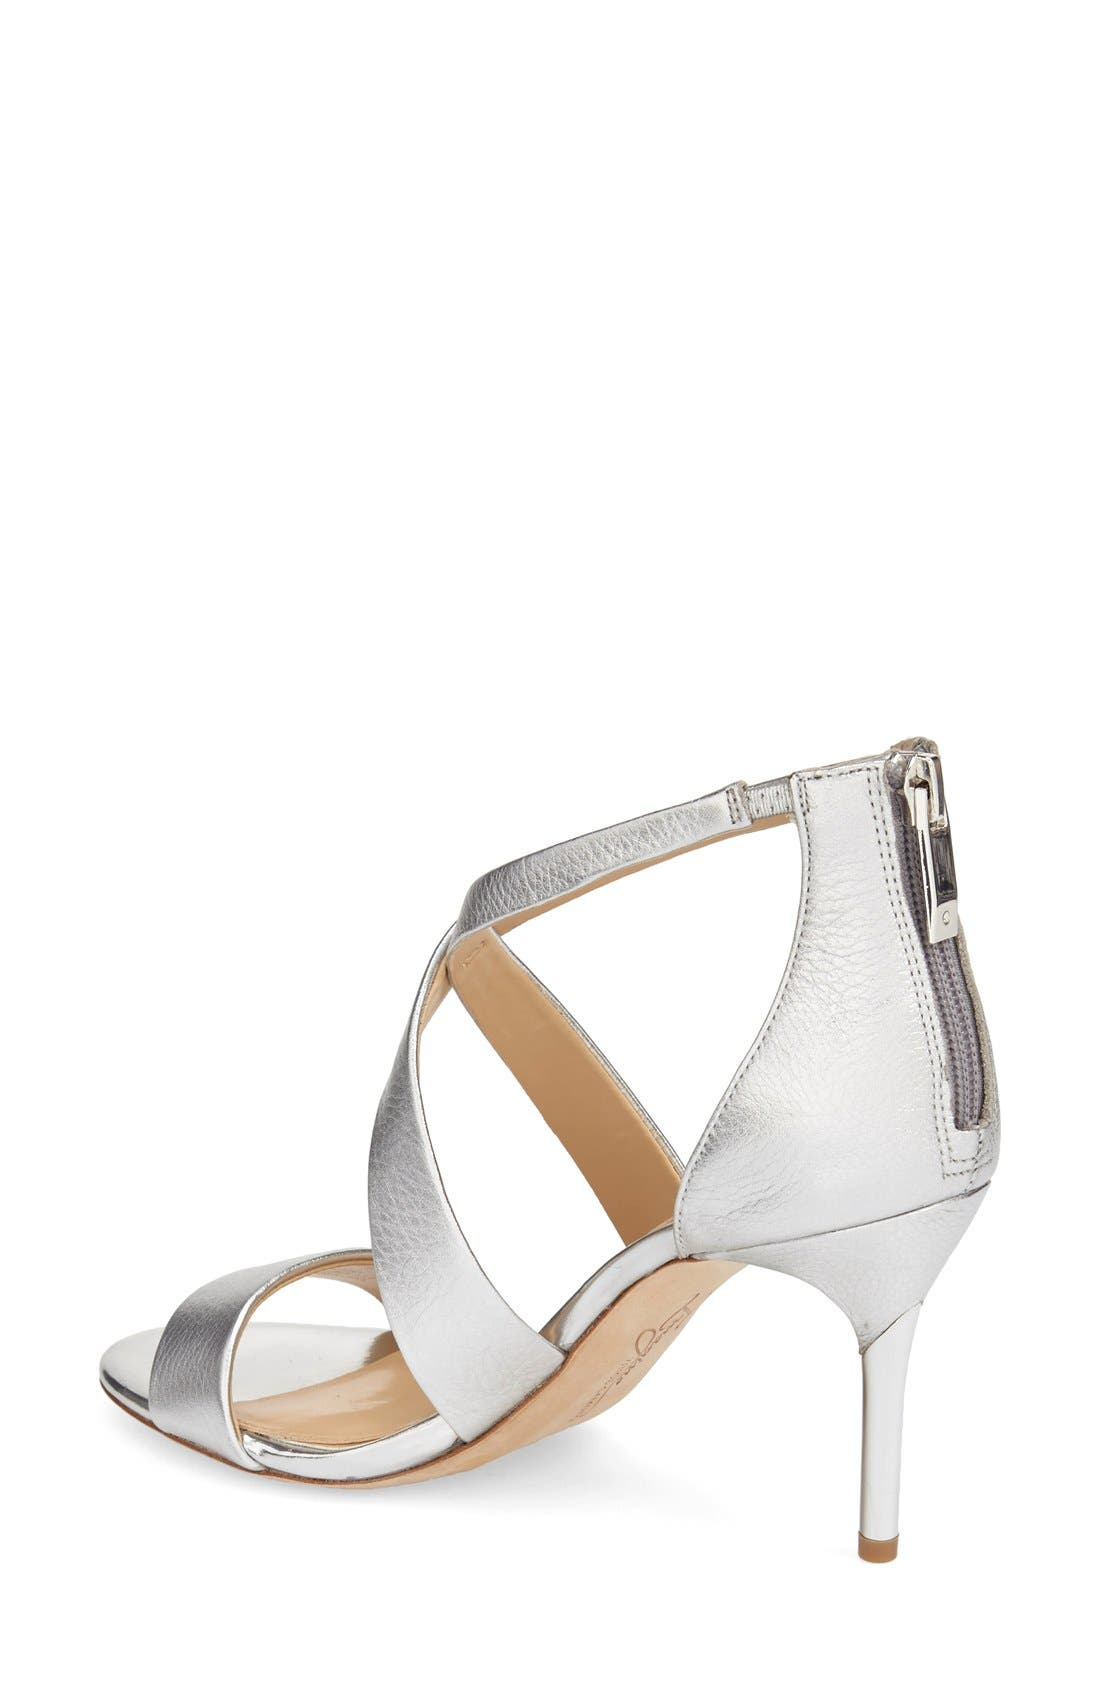 'Pascal 2' Strappy Evening Sandal,                             Alternate thumbnail 2, color,                             PLATINUM LEATHER